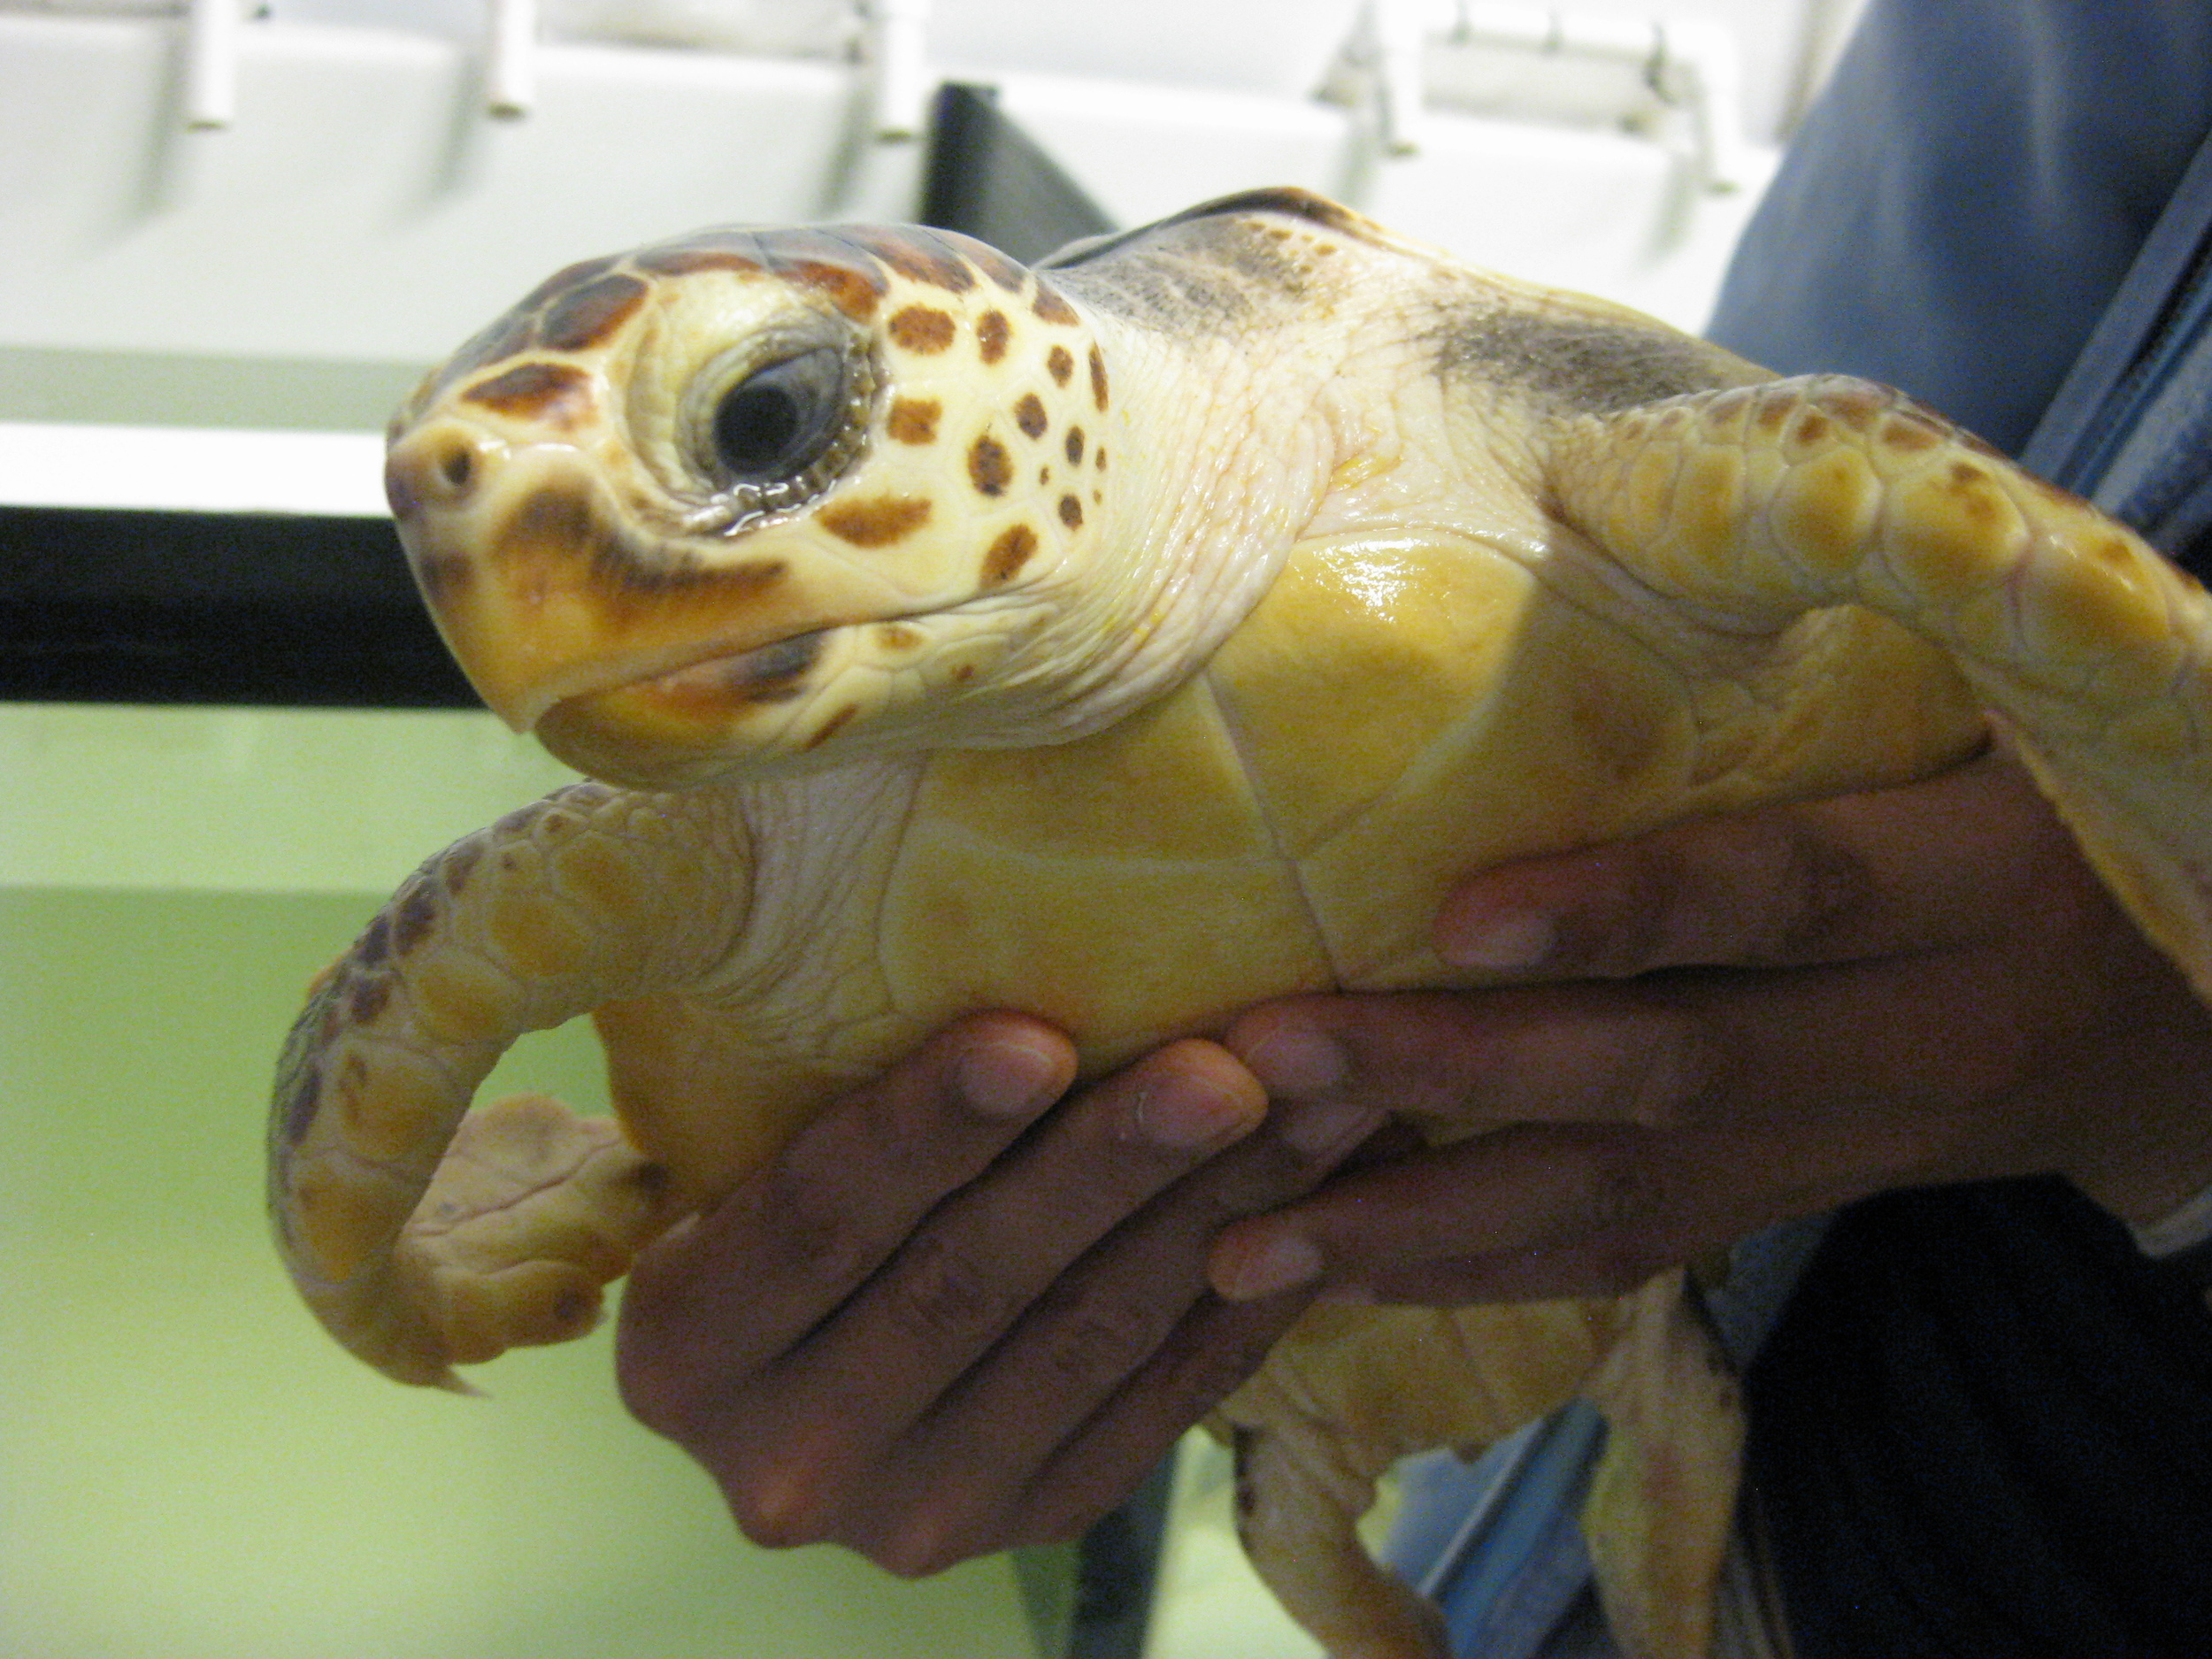 Student holding a Loggerhead sea turtle on a field trip to Pine Knoll Shores aquarium, 2013.